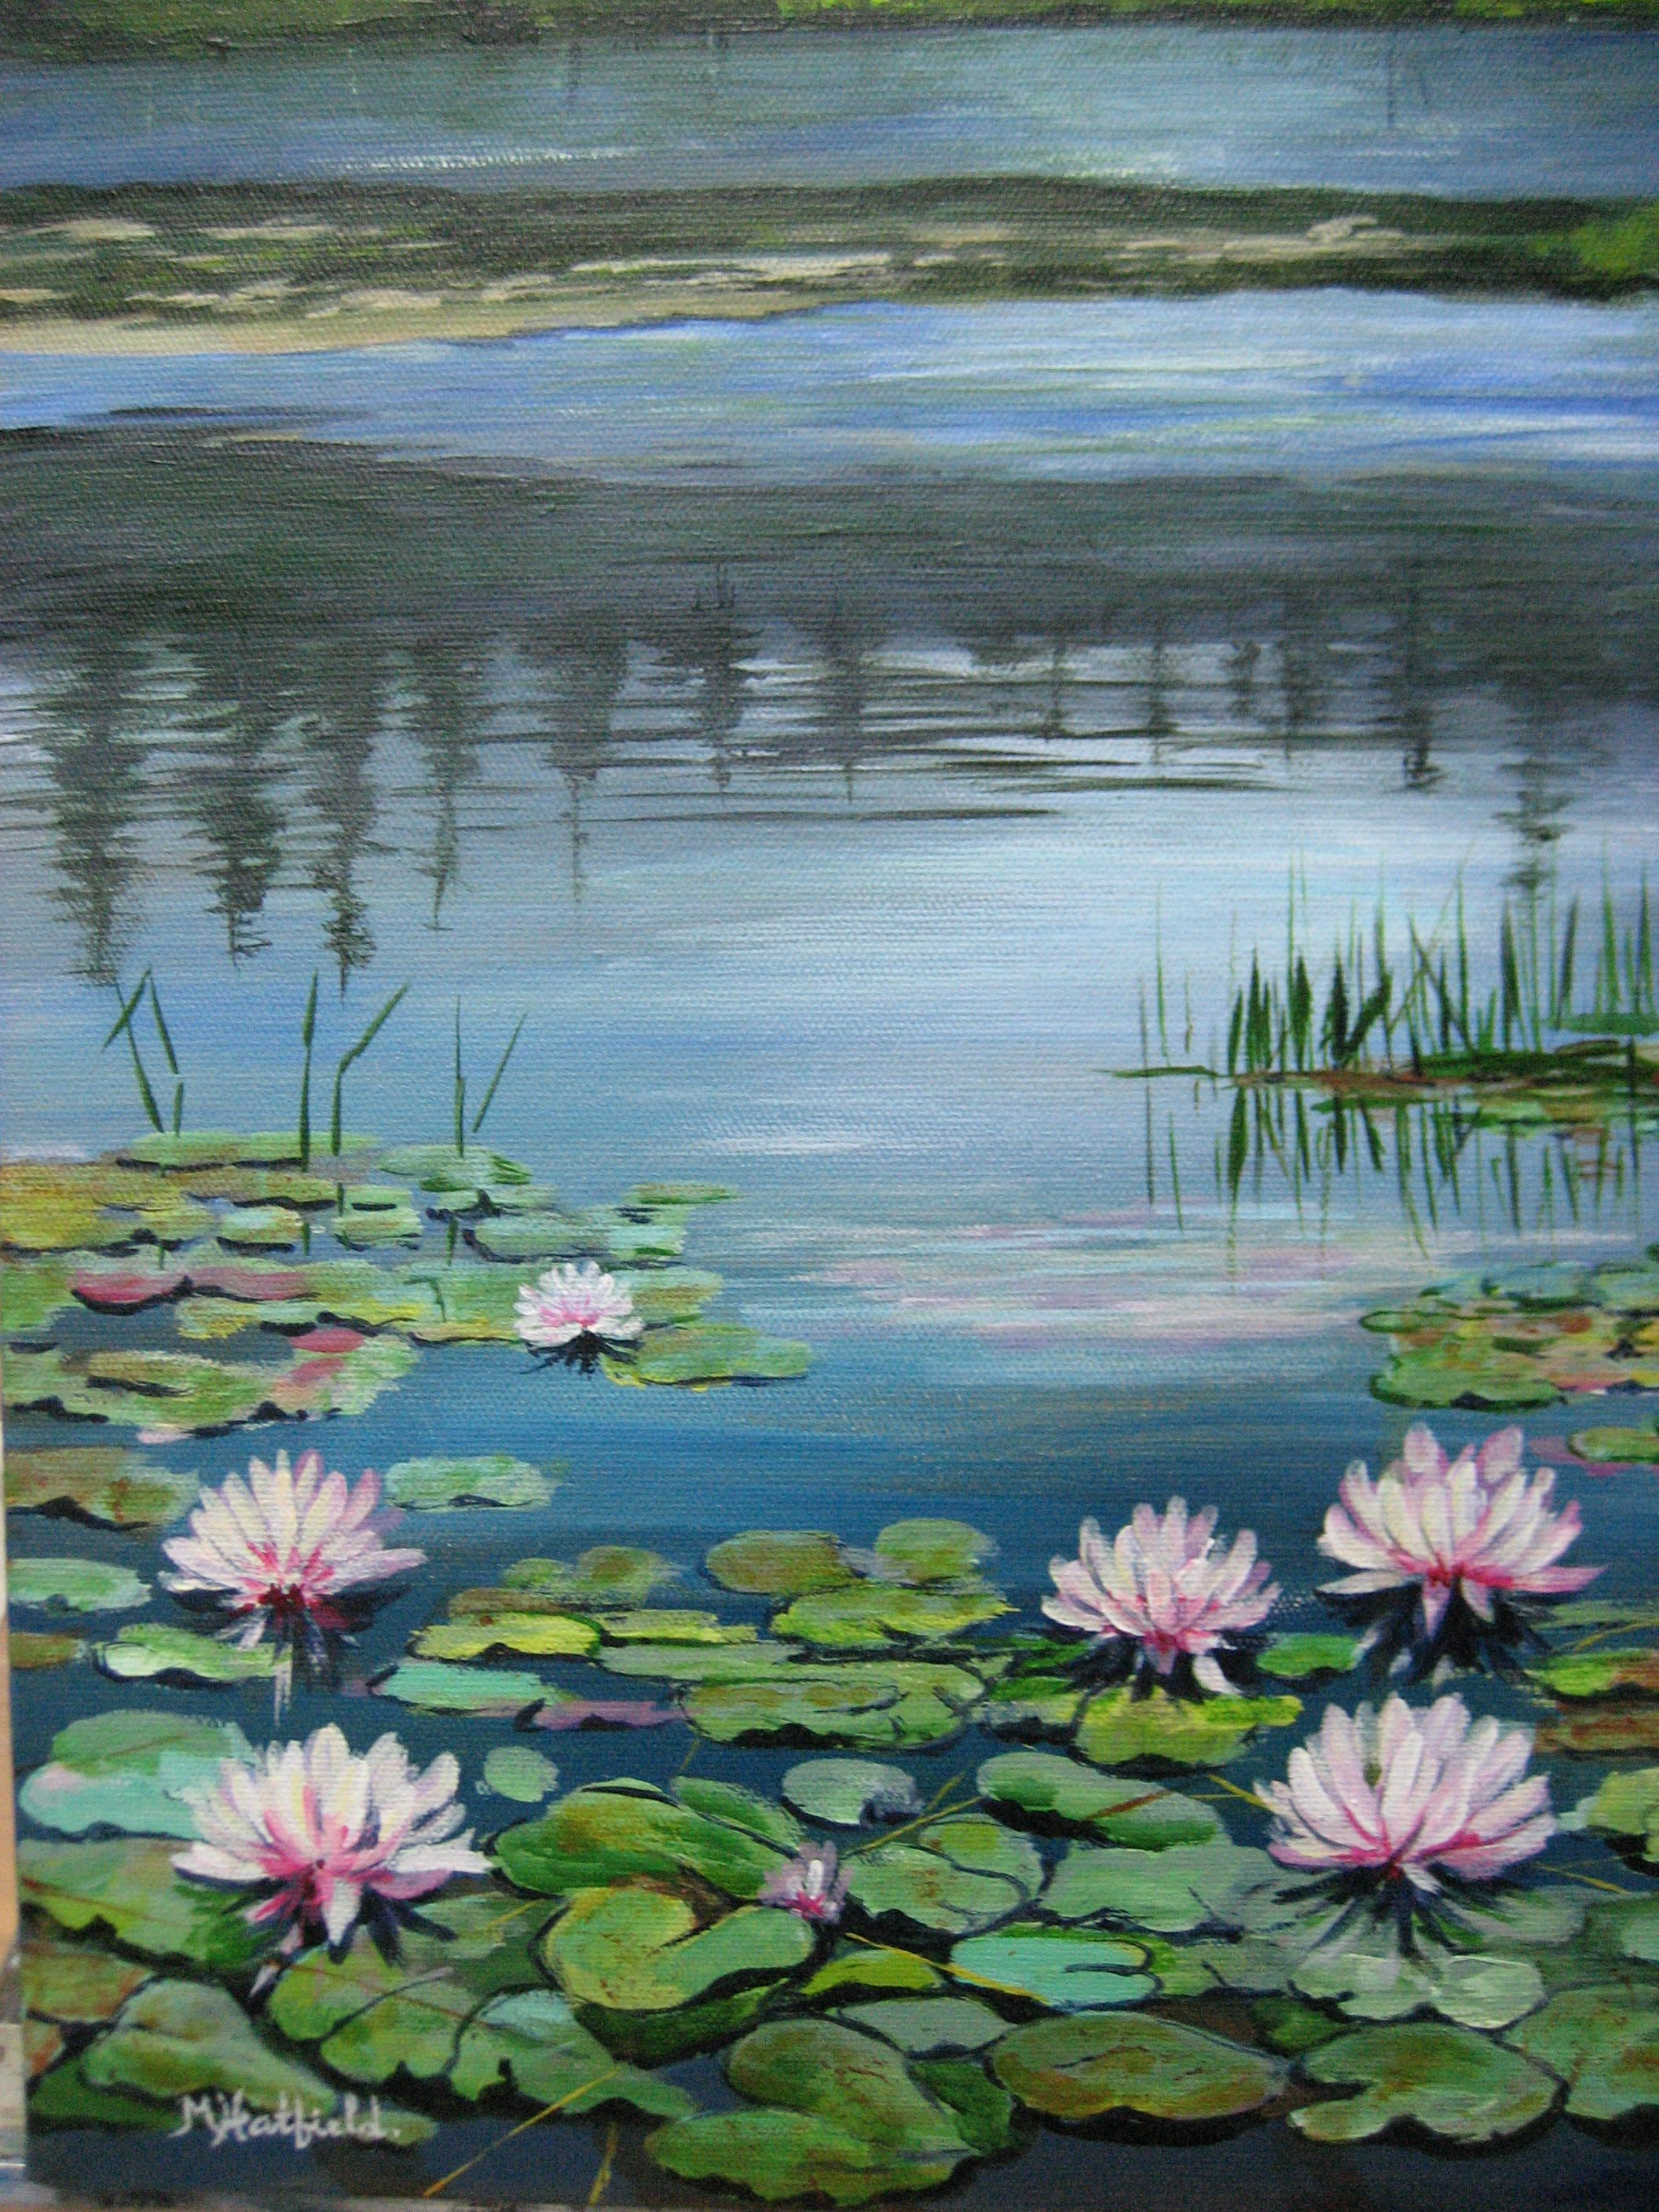 Pink Water Lilies in acrylic by M. Hatfield Florals